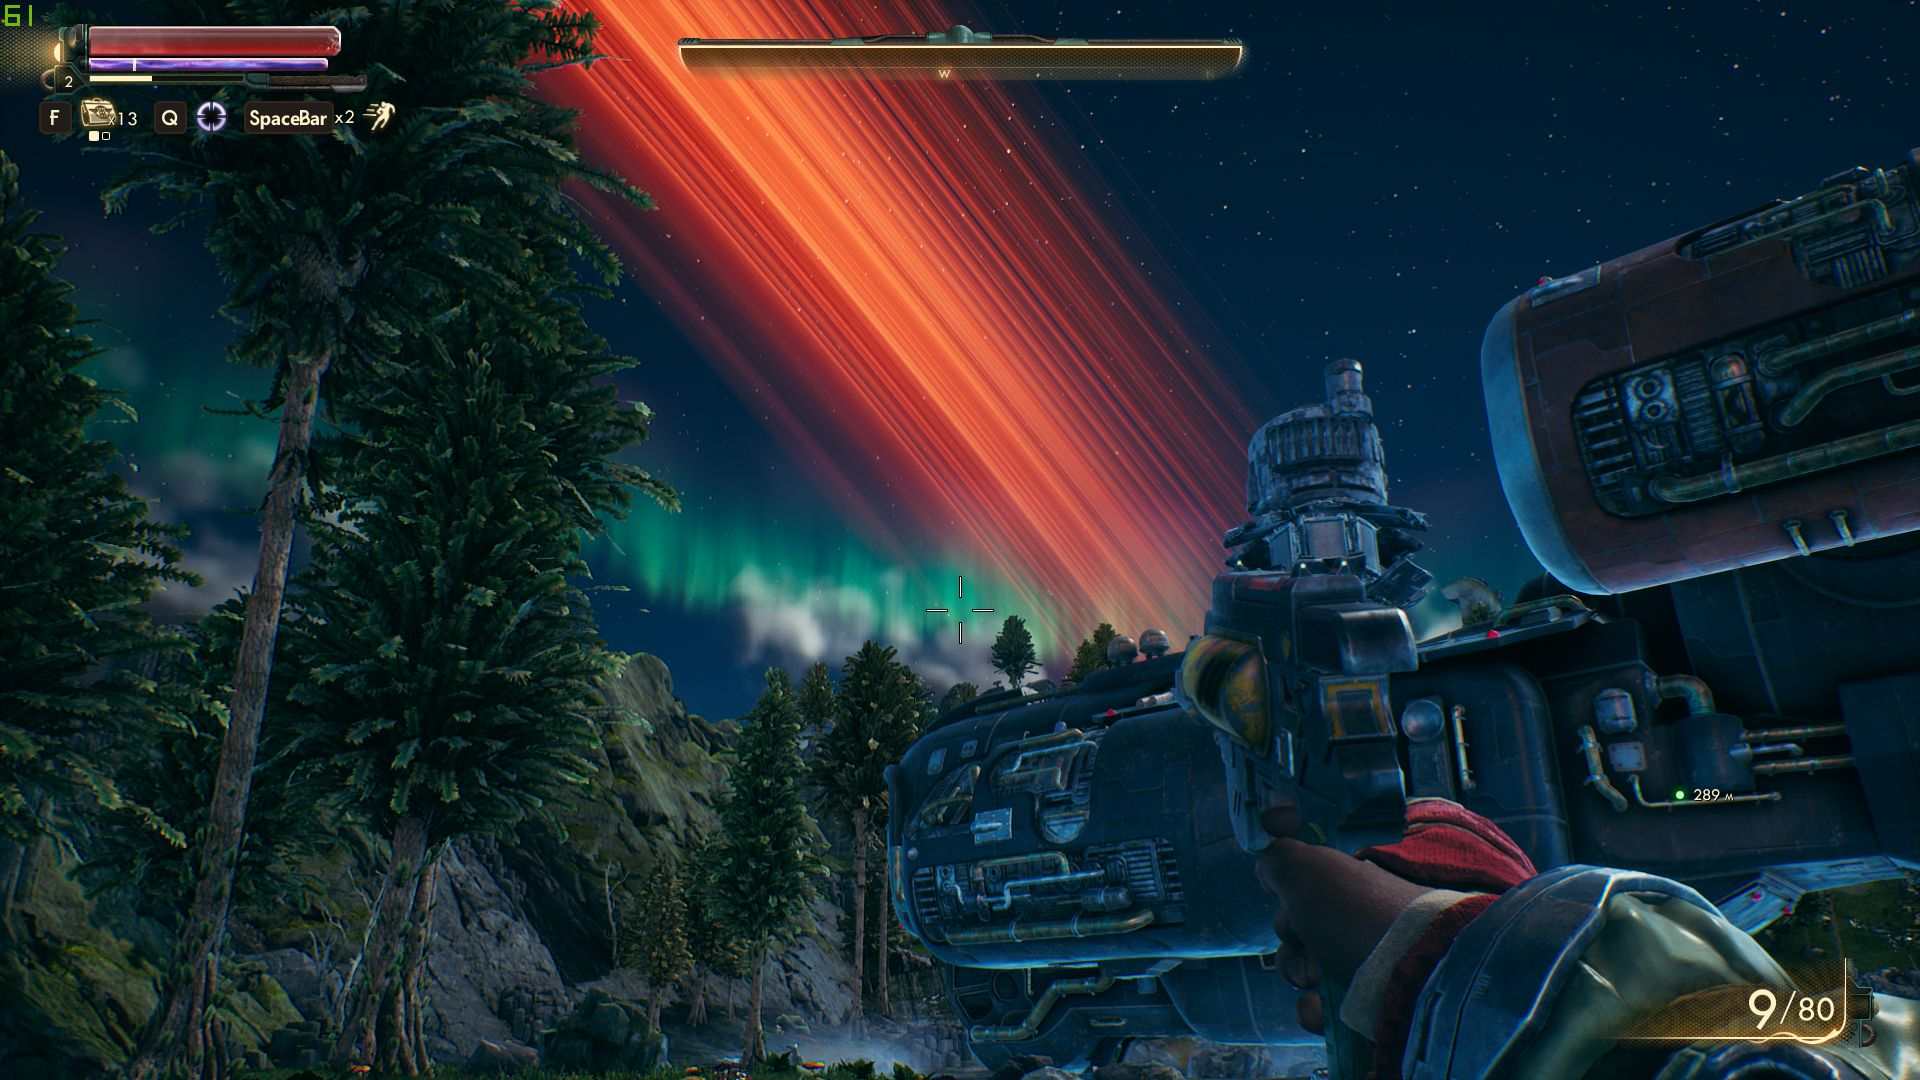 00039.Jpg - Outer Worlds, the